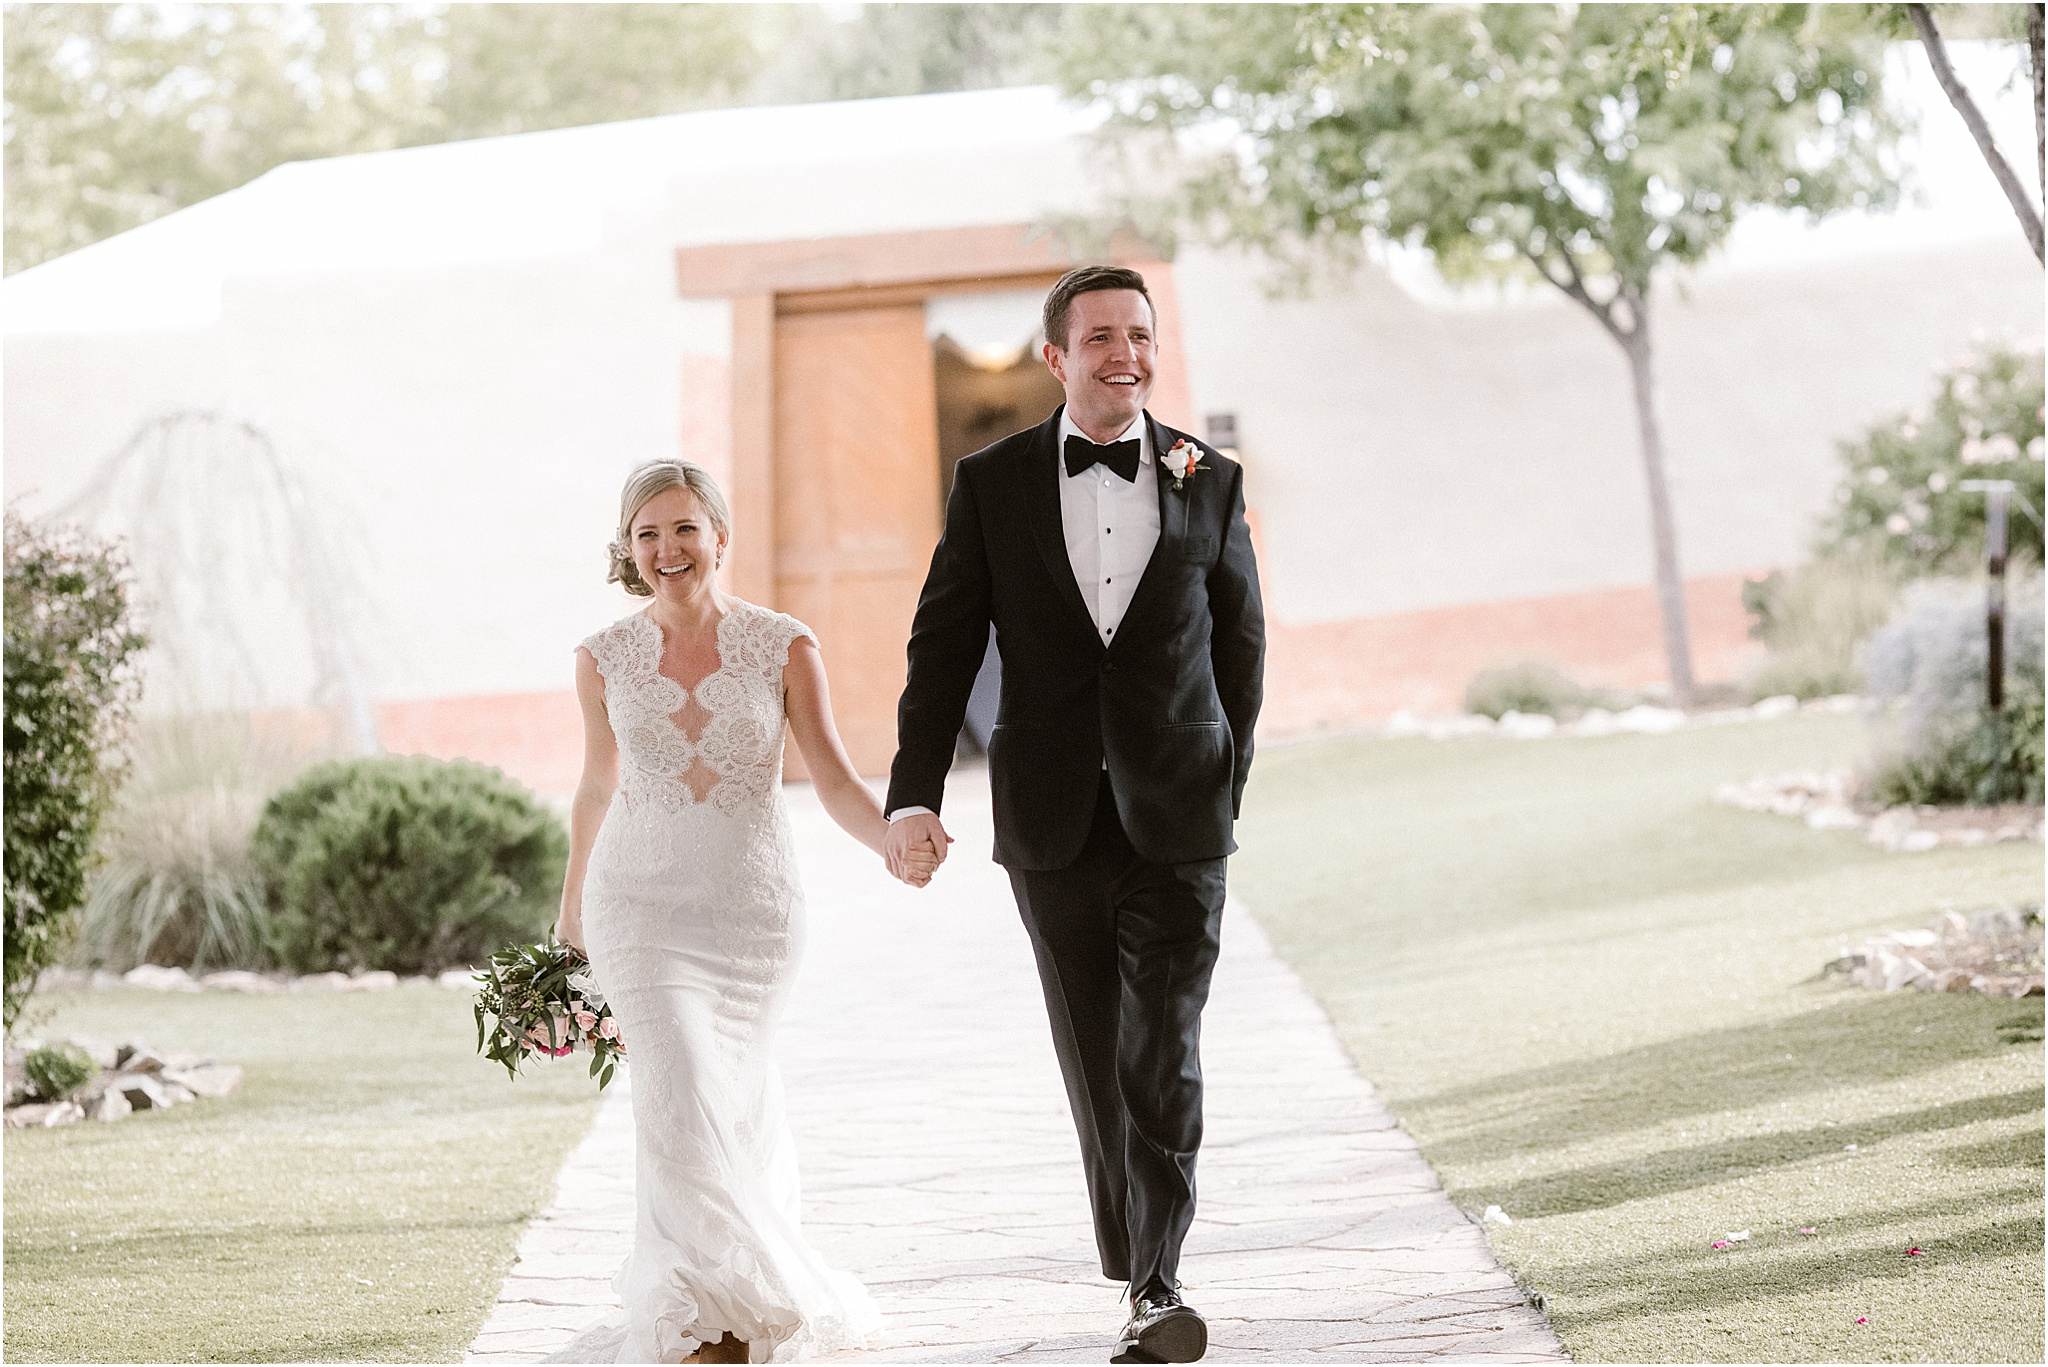 JENNA_JEROME_BLUE ROSE PHOTOGRAPHY_ABQ WEDDING_54